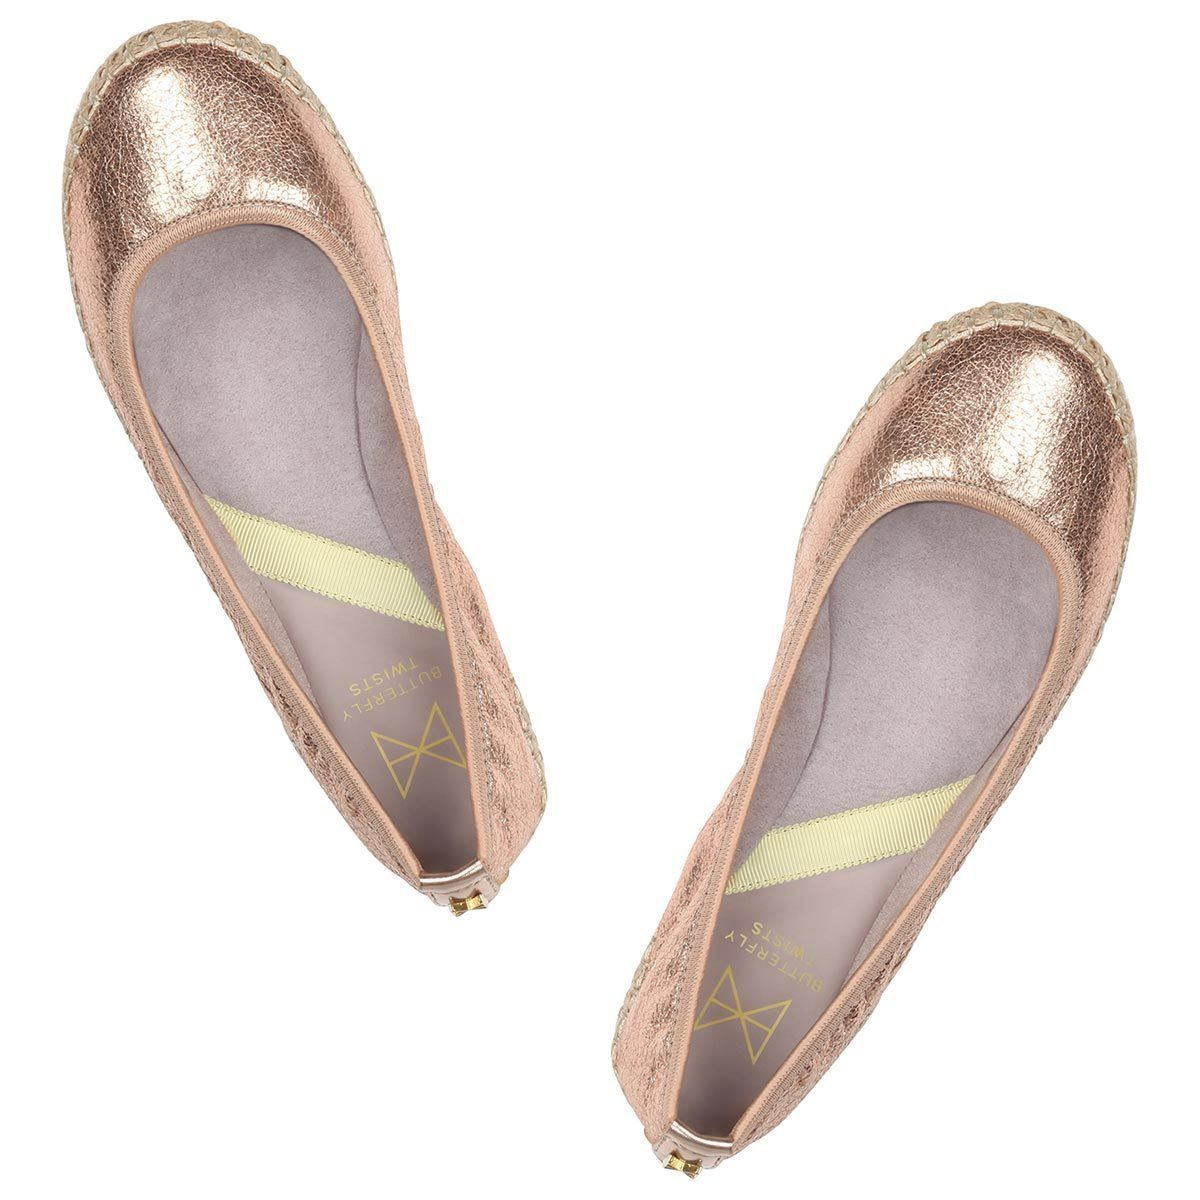 Step into summer with our espadrille inspired GIGI. Pairing a natural jute sole with a cracked rose gold metallic, this style is a holiday essential. A round toe silhouette A raffia jute sole combined with a cracked rose gold faux leather Soft, comfortable faux suede lining Cushioning memory foam insoles for added comfort Twist Tech Technology Flexible rubber sole: folding shoe Vegan We deliver to over 50 countries worldwide. to see which countries we deliver to please visit our FAQ section. We